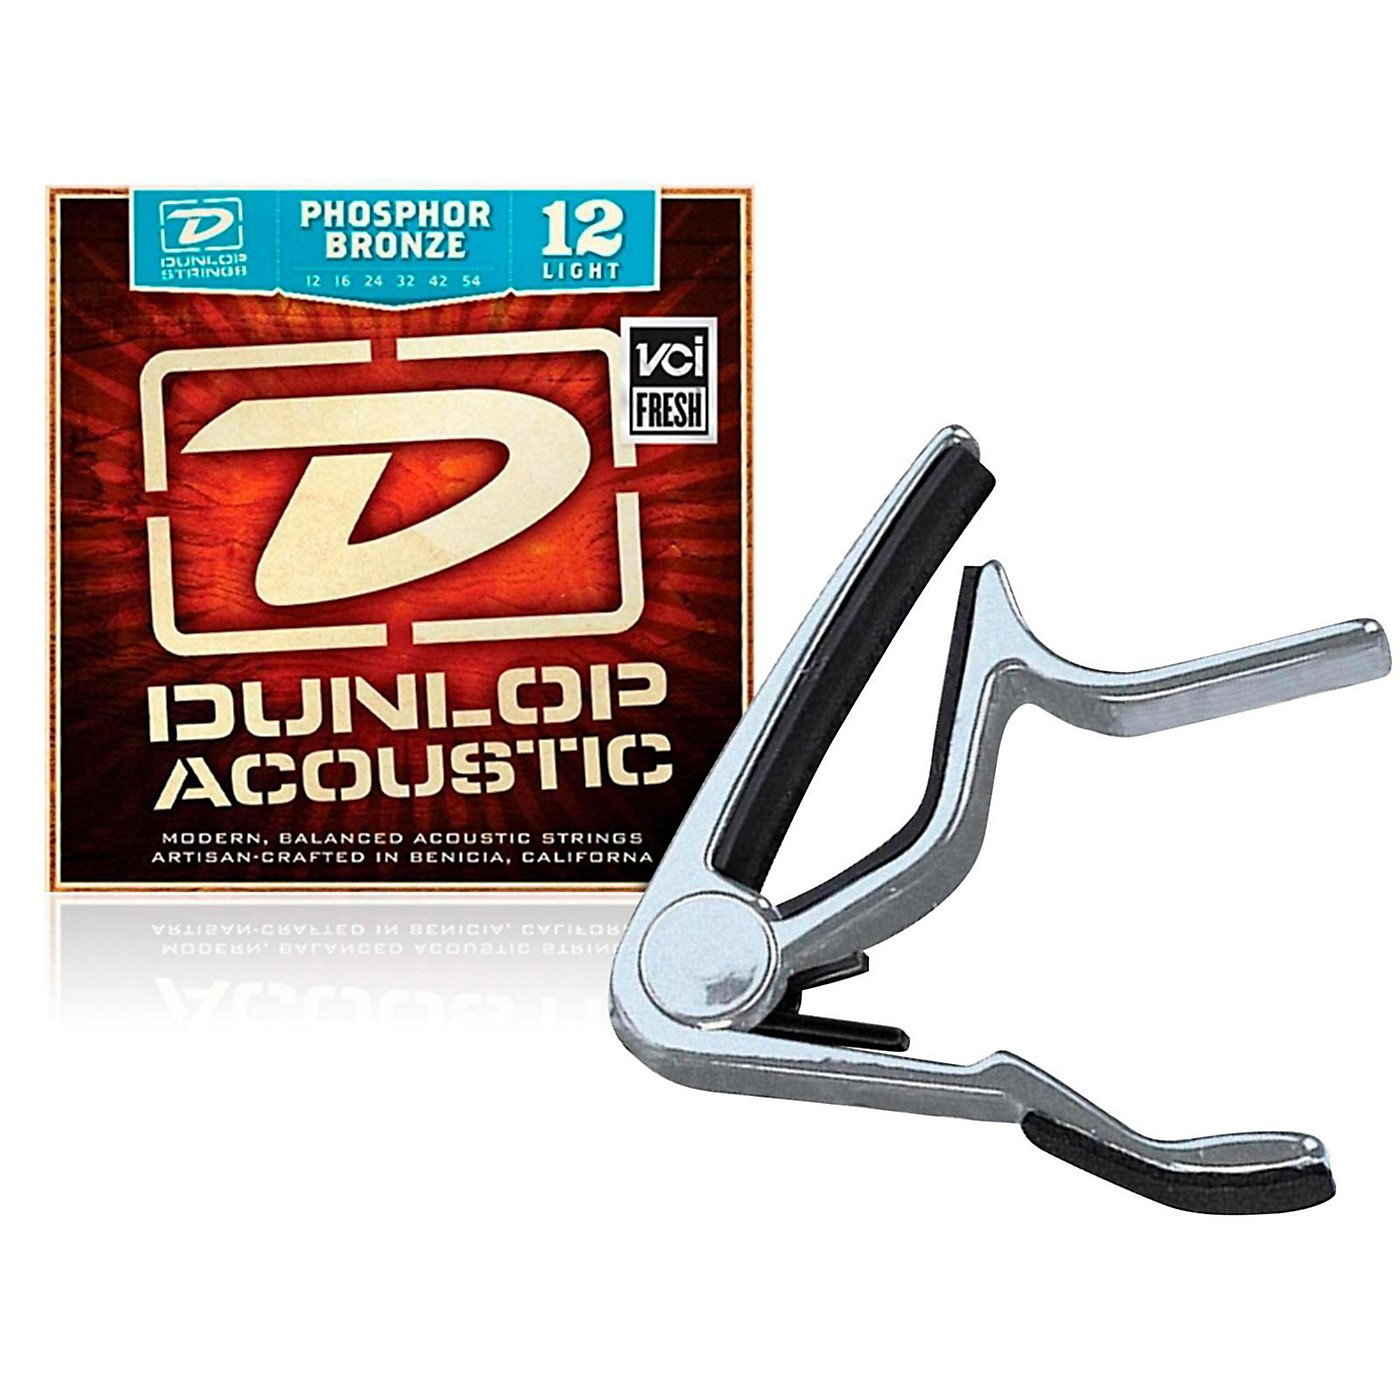 Dunlop Trigger Flat Nickel Capo and Phosphor Bronze Light Acoustic Guitar Strings  thumbnail